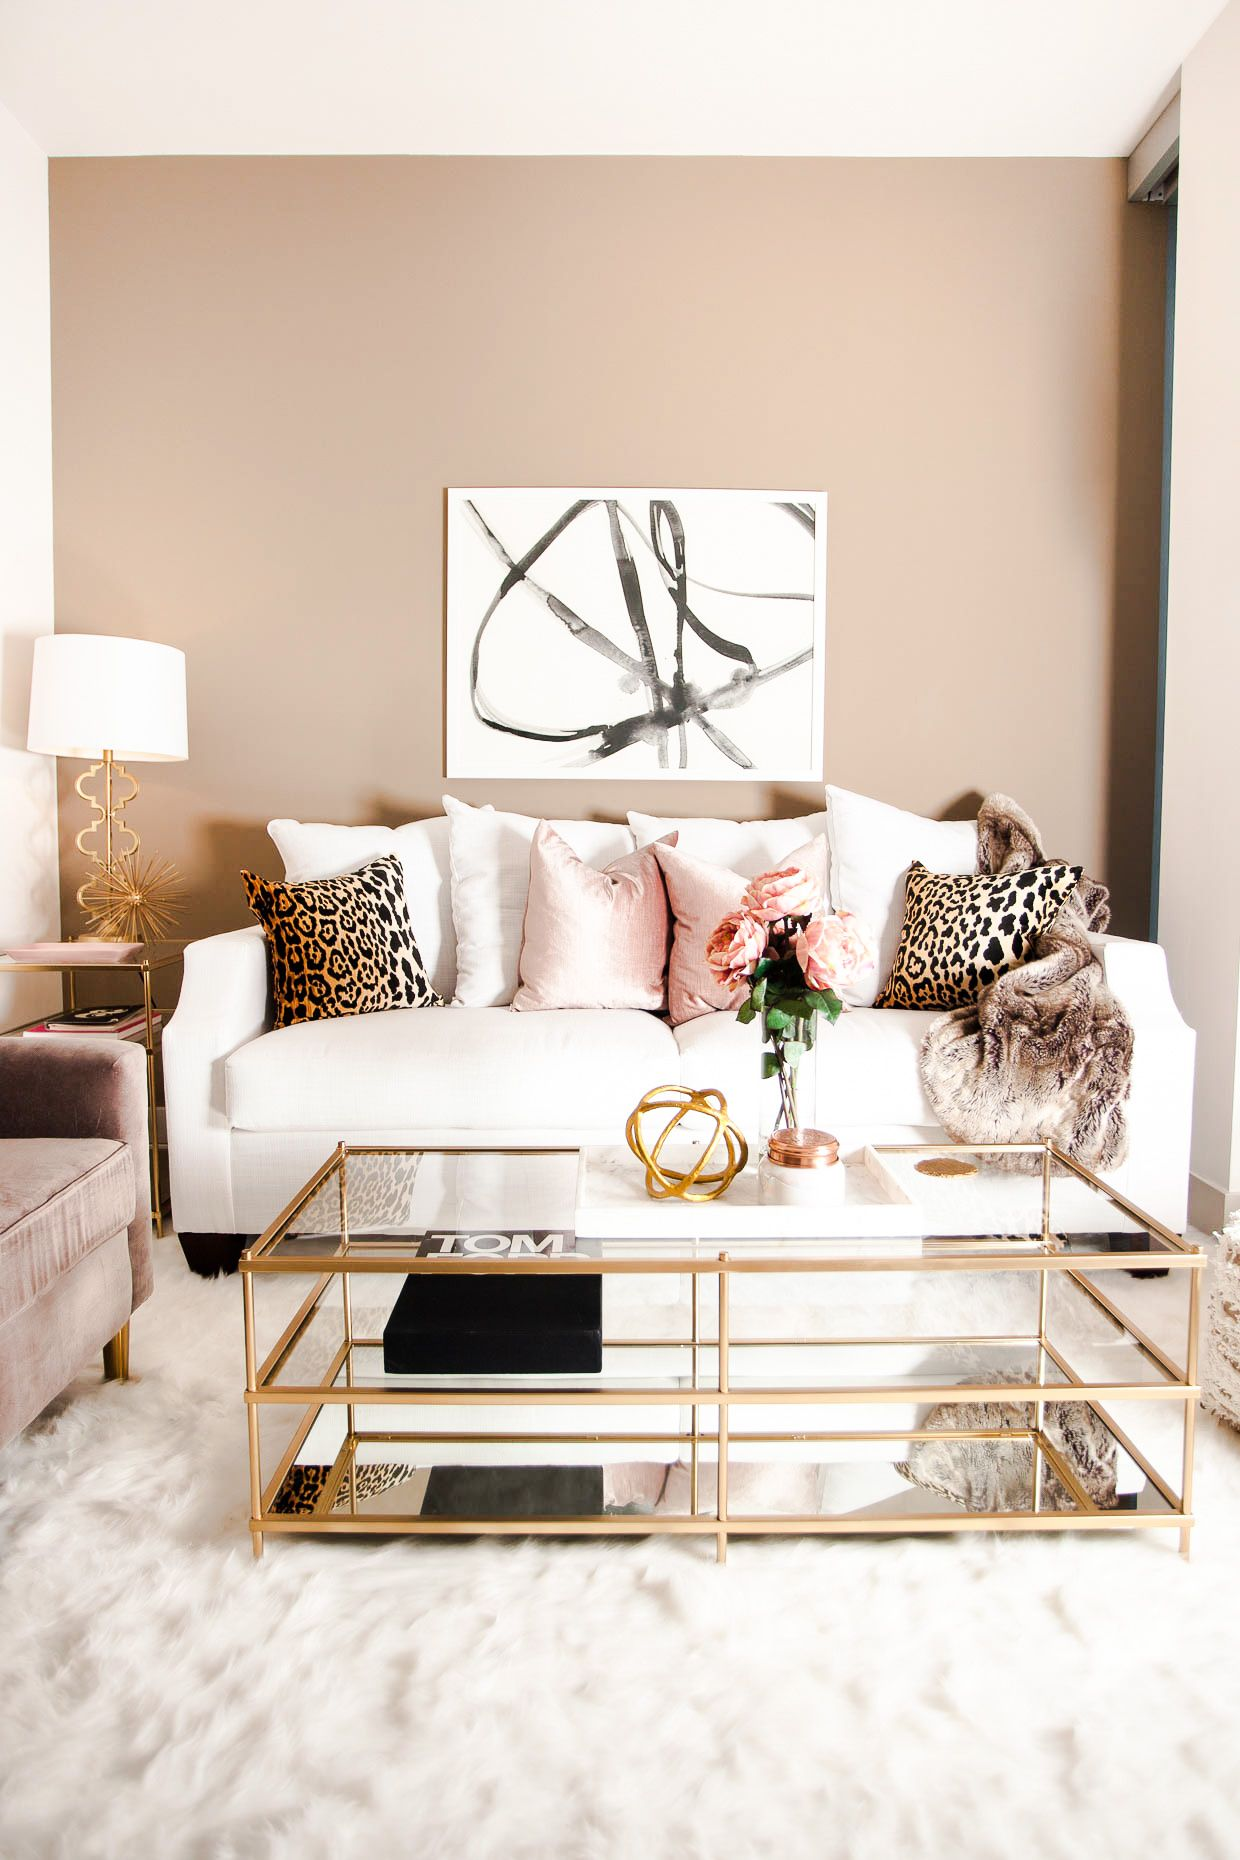 need wider couch, note artwork vs pillows | Interiors | Pinterest ...